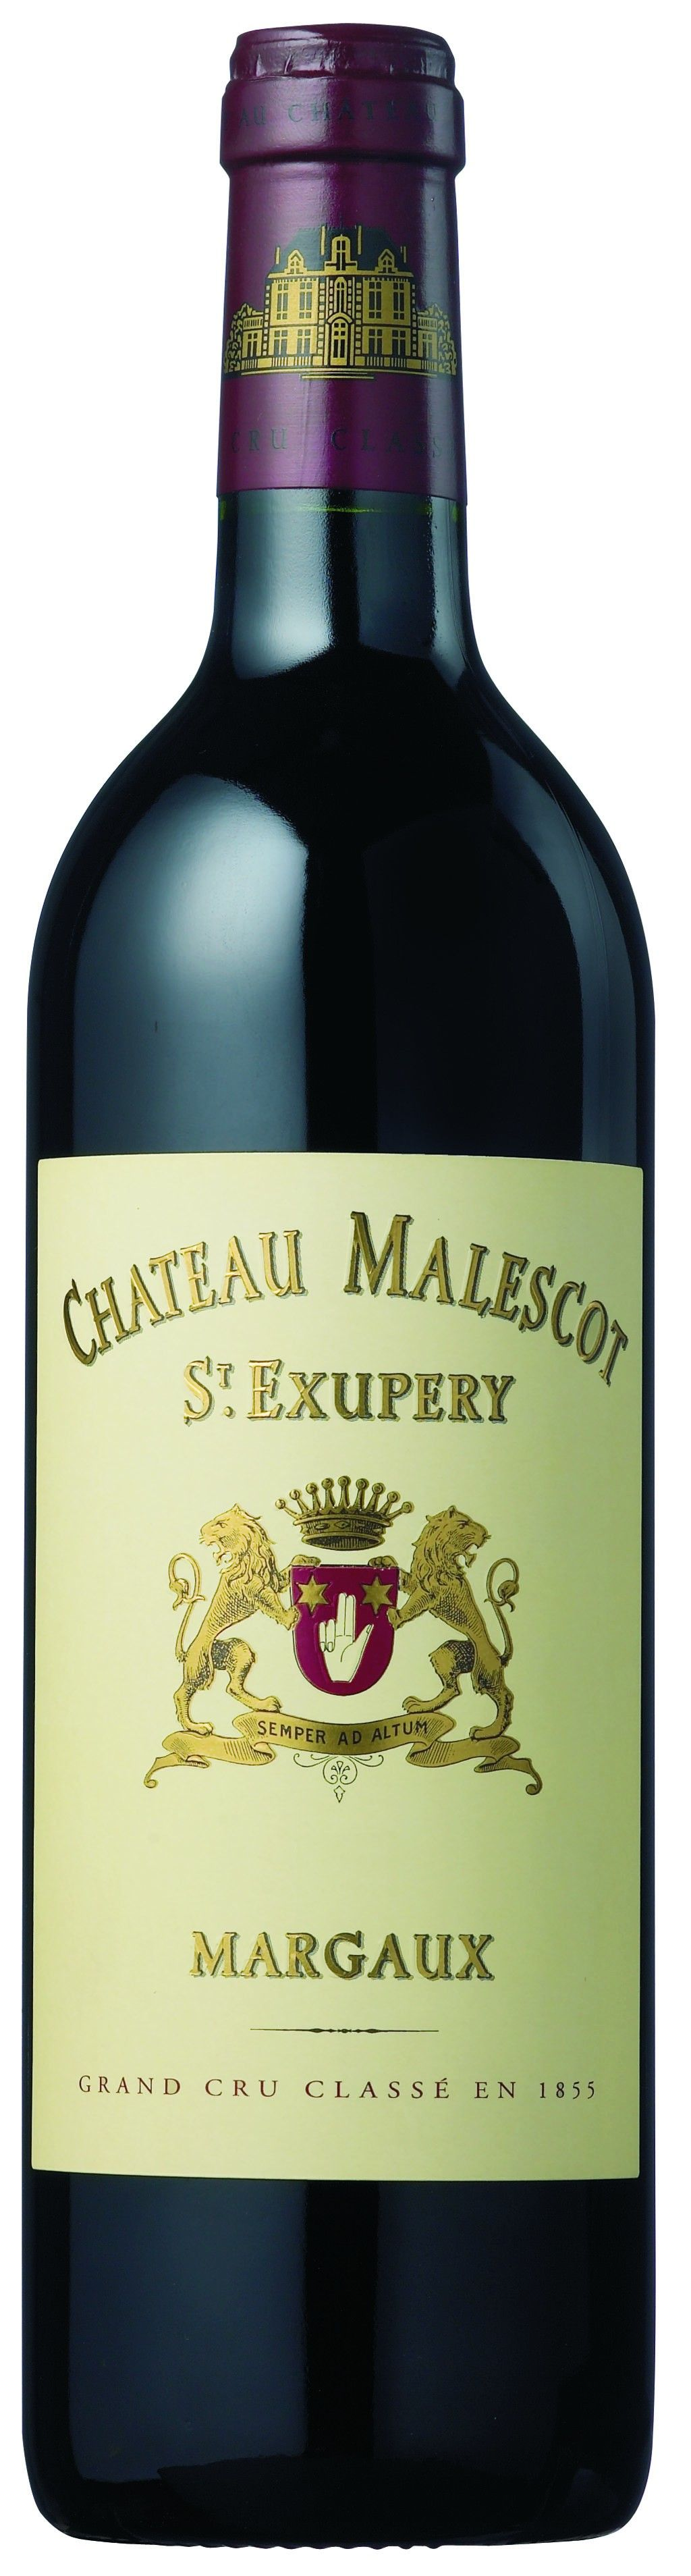 Chateau Malescot-St-Exupery, 2007